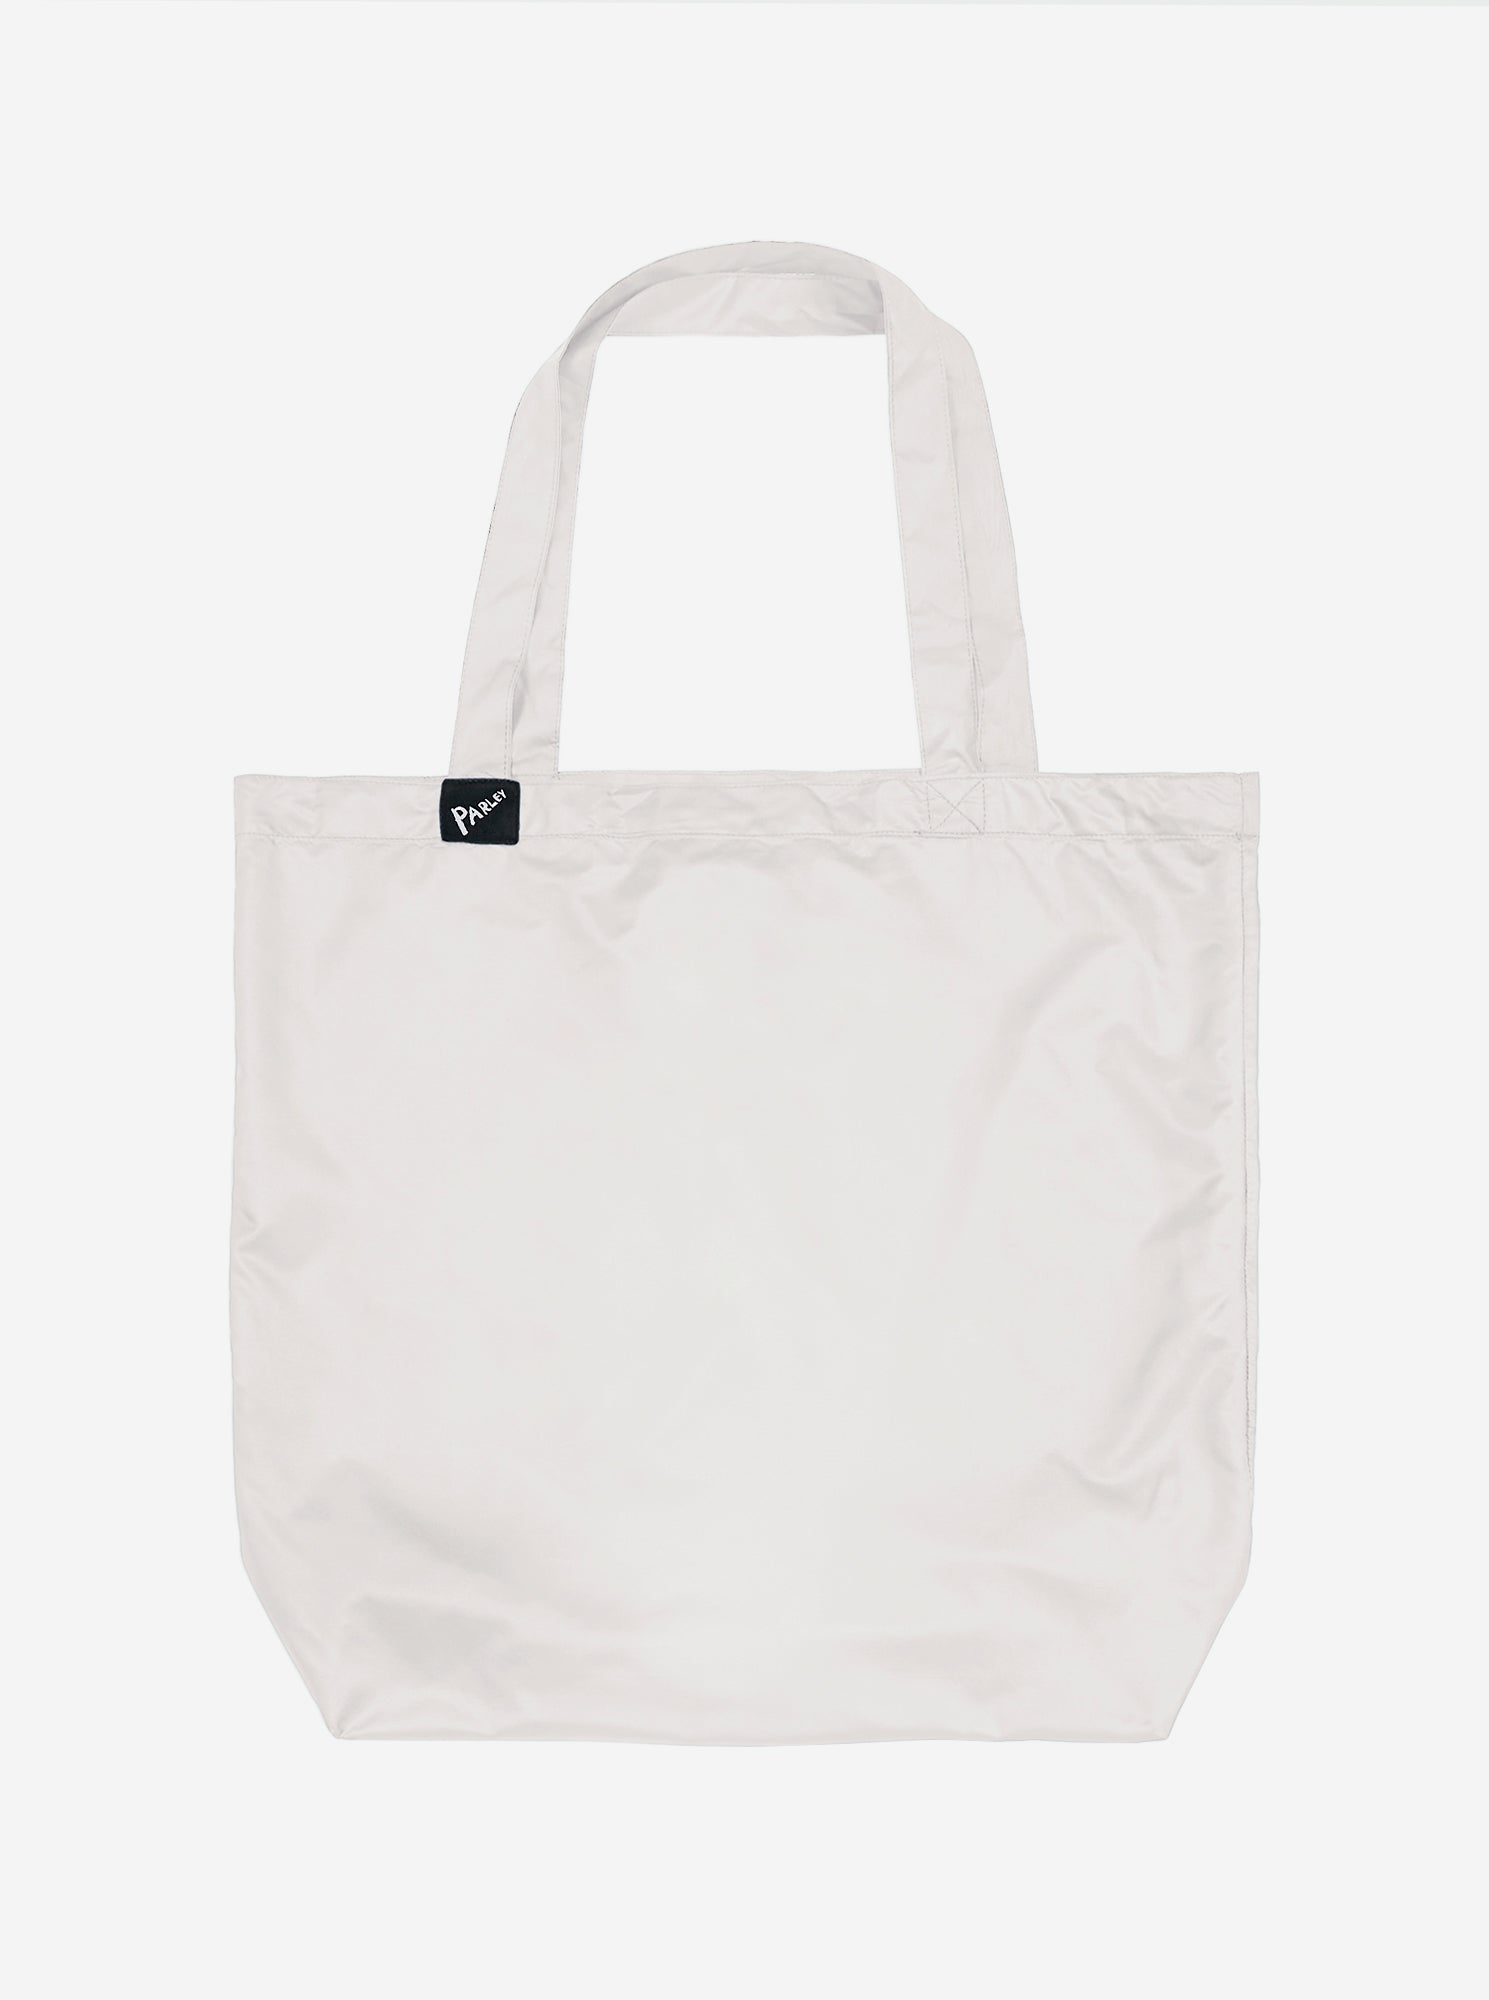 Parley Ocean Bag Shop Parley Com